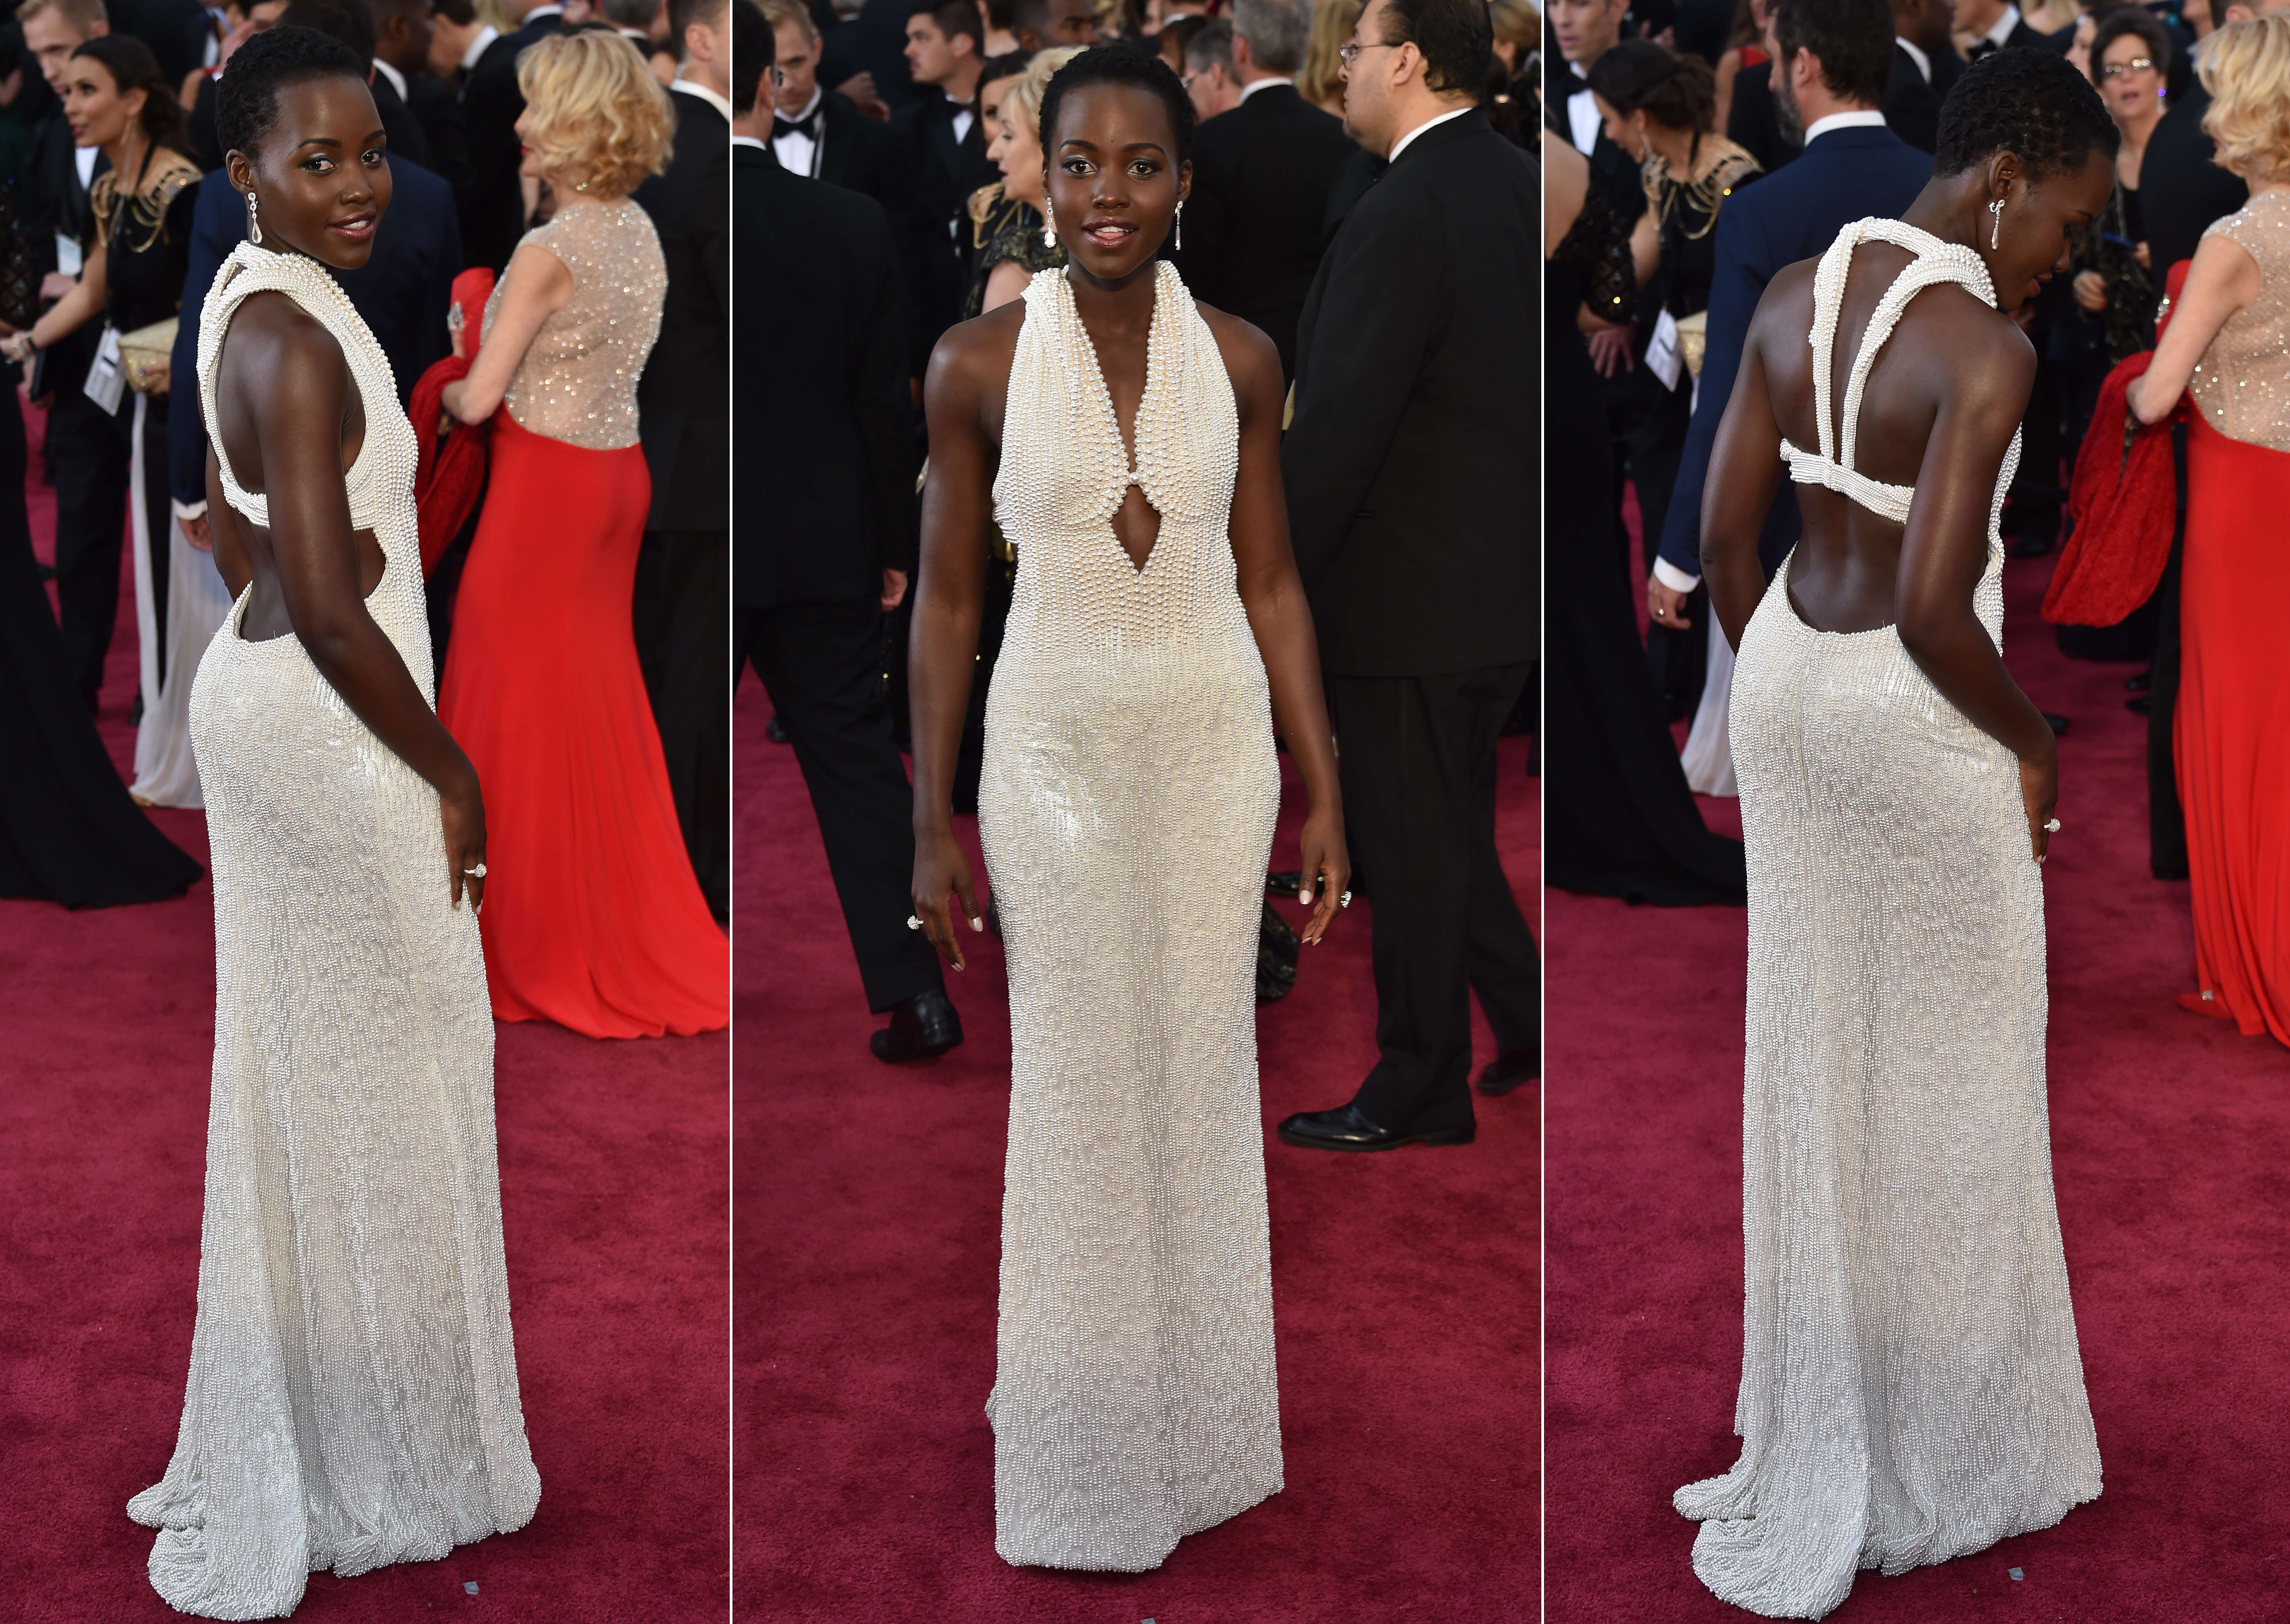 Actress Lupita Nyong'o poses on the red carpet in this combination image for the 87th Oscars on February 22, 2015 in Hollywood, California.